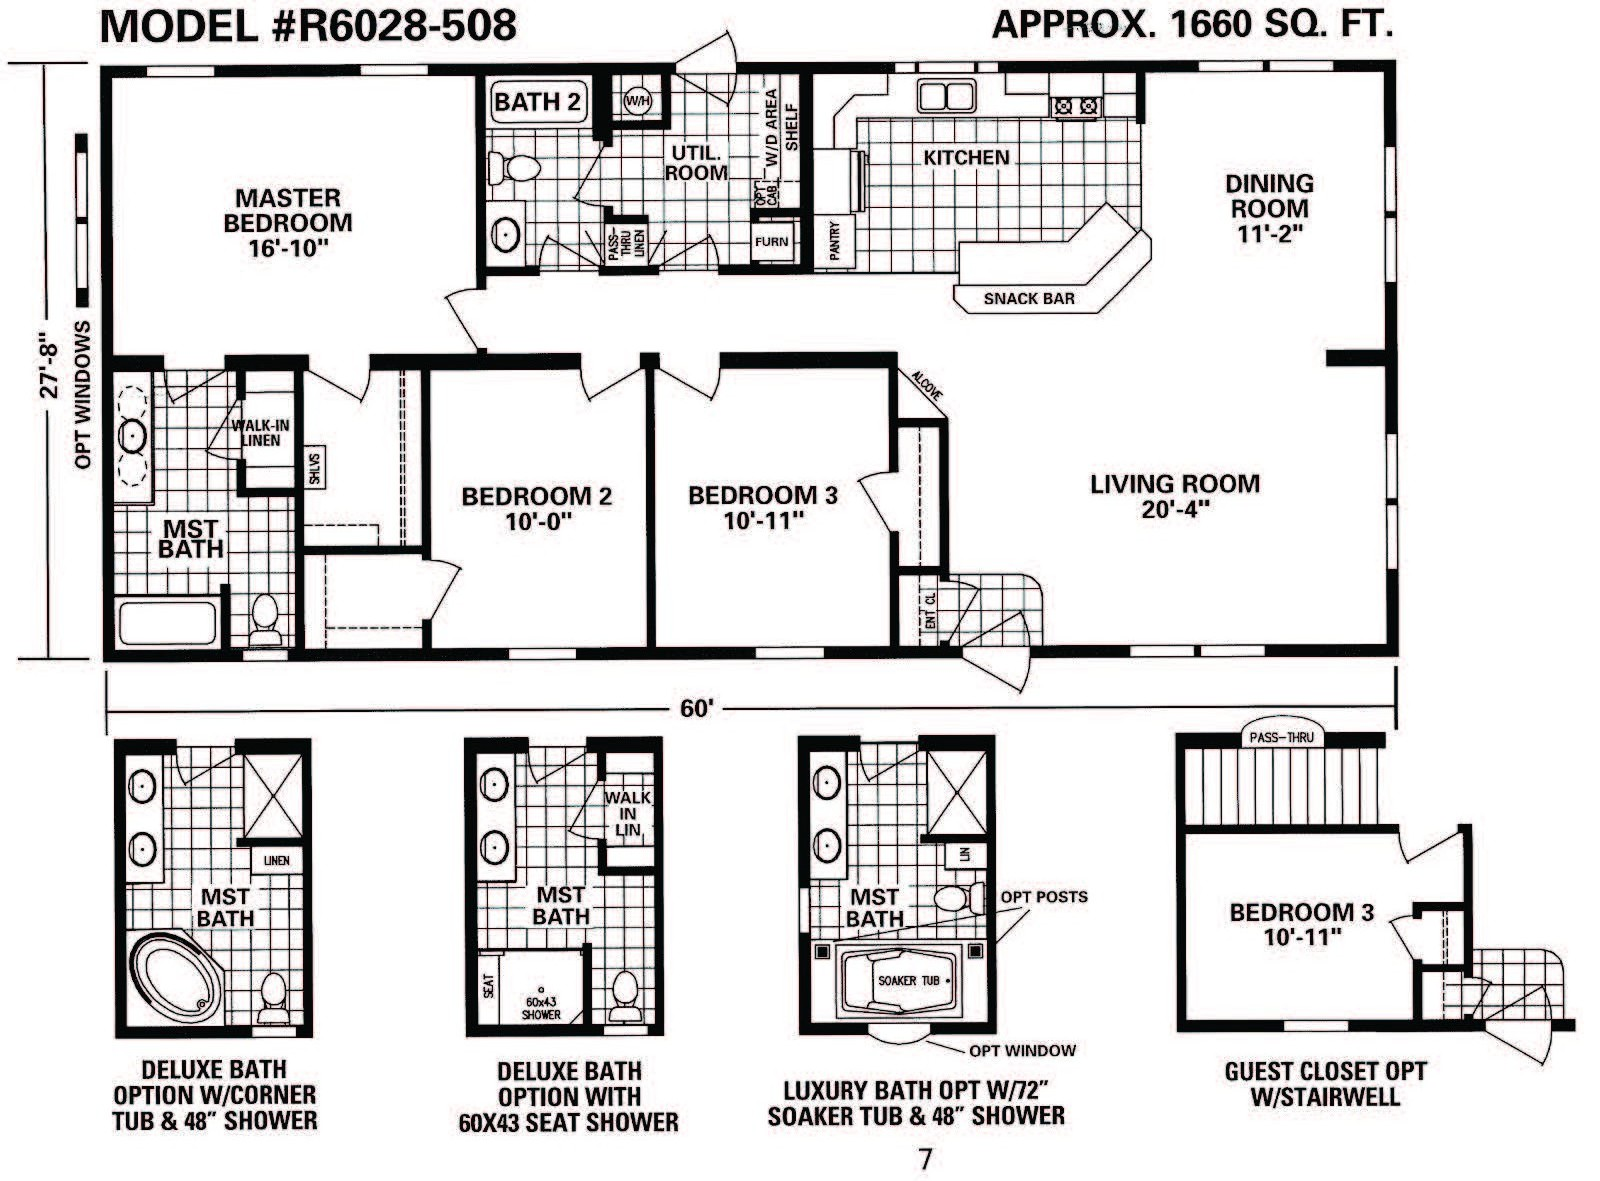 Schult timberland 6028 508 excelsior homes west inc for Timberline homes floor plans